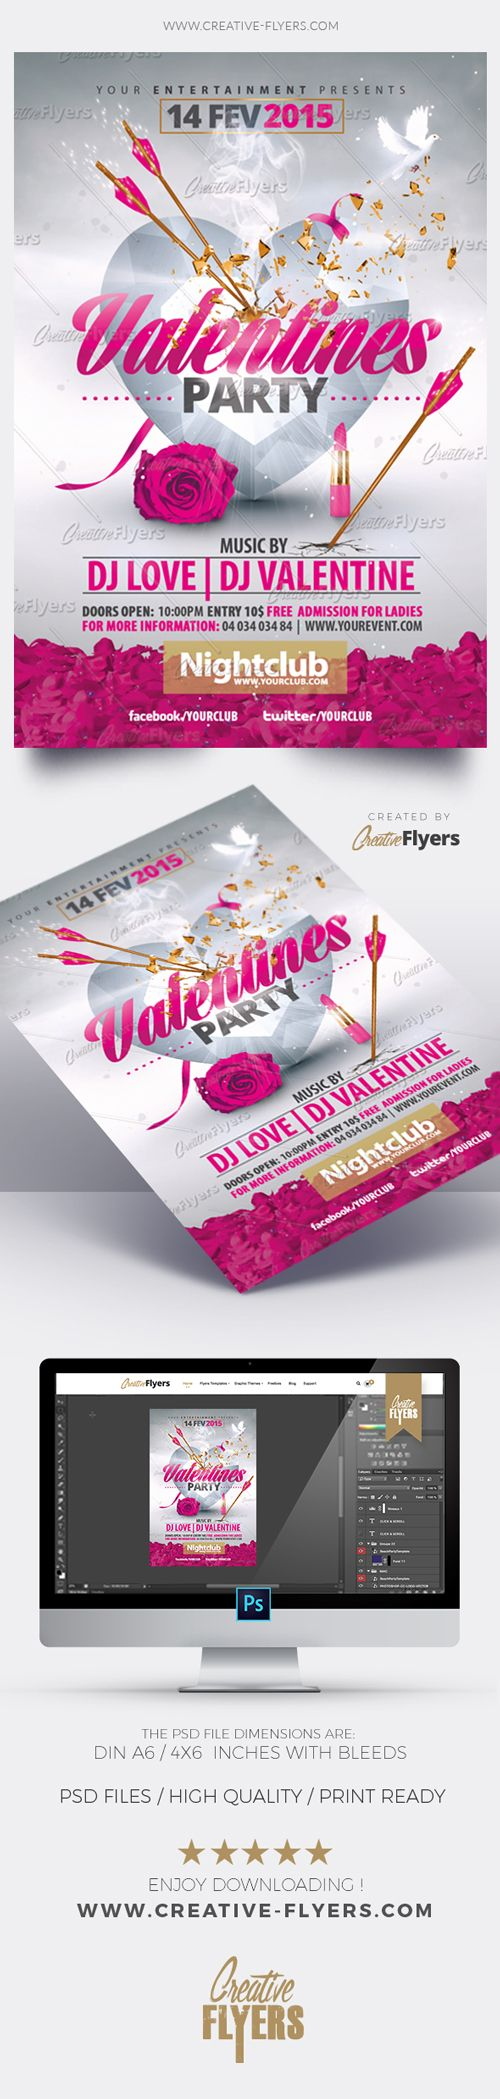 Enjoy downloading the Premium Photoshop PSD Flyer / poster Template designed by Creative Flyers perfect to promote your Valentine Party ! #valentinesday #flyers #templates #creativeflyers